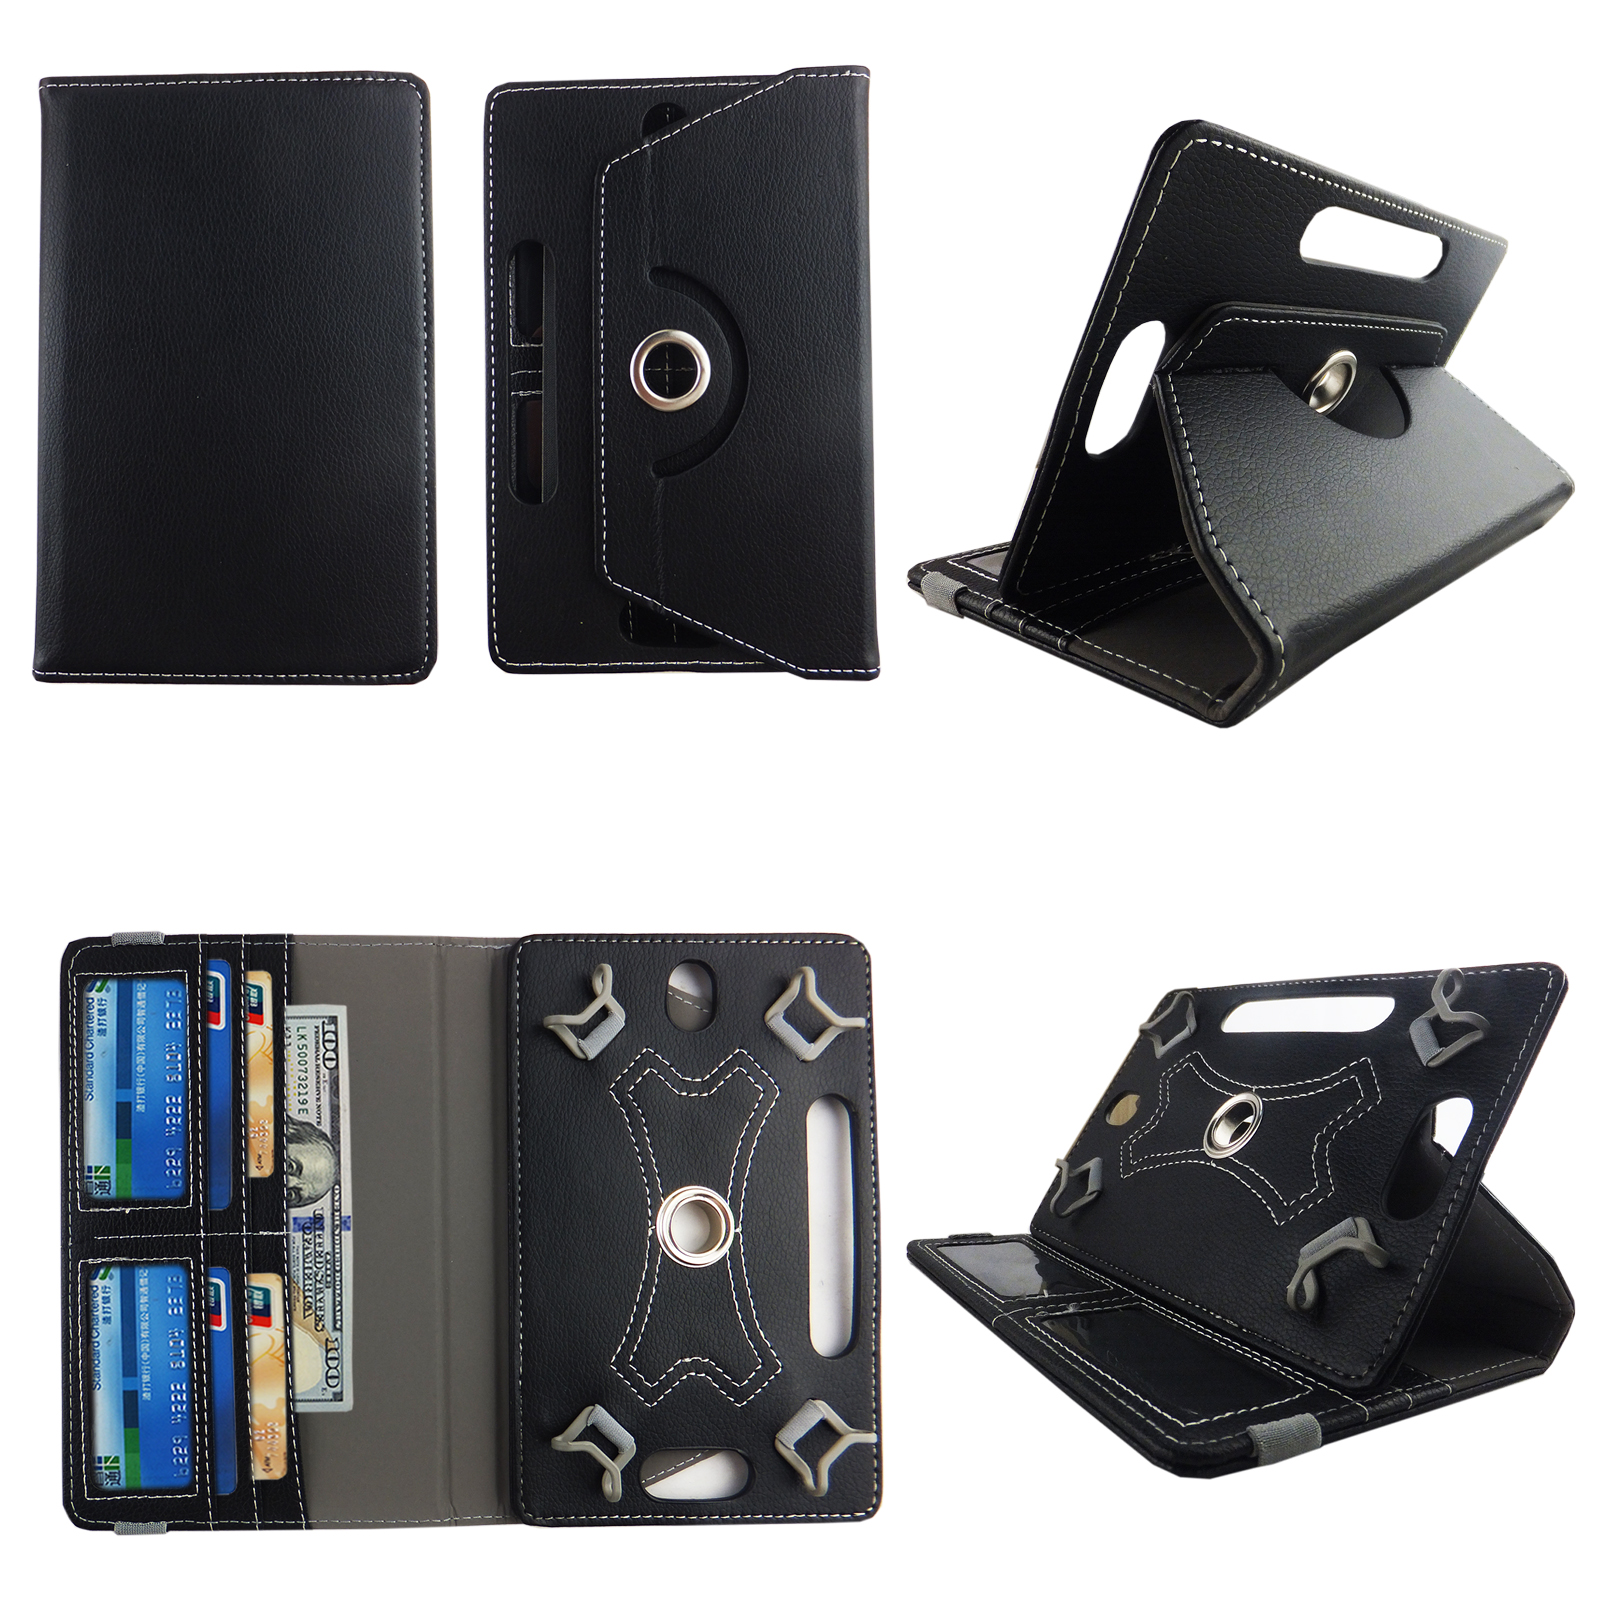 "Black tablet case 10 inch for universal 10"" 10inch android tablet cases 360 rotating slim folio stand protector pu leather cover travel e-reader cash slots - Walmart.com"